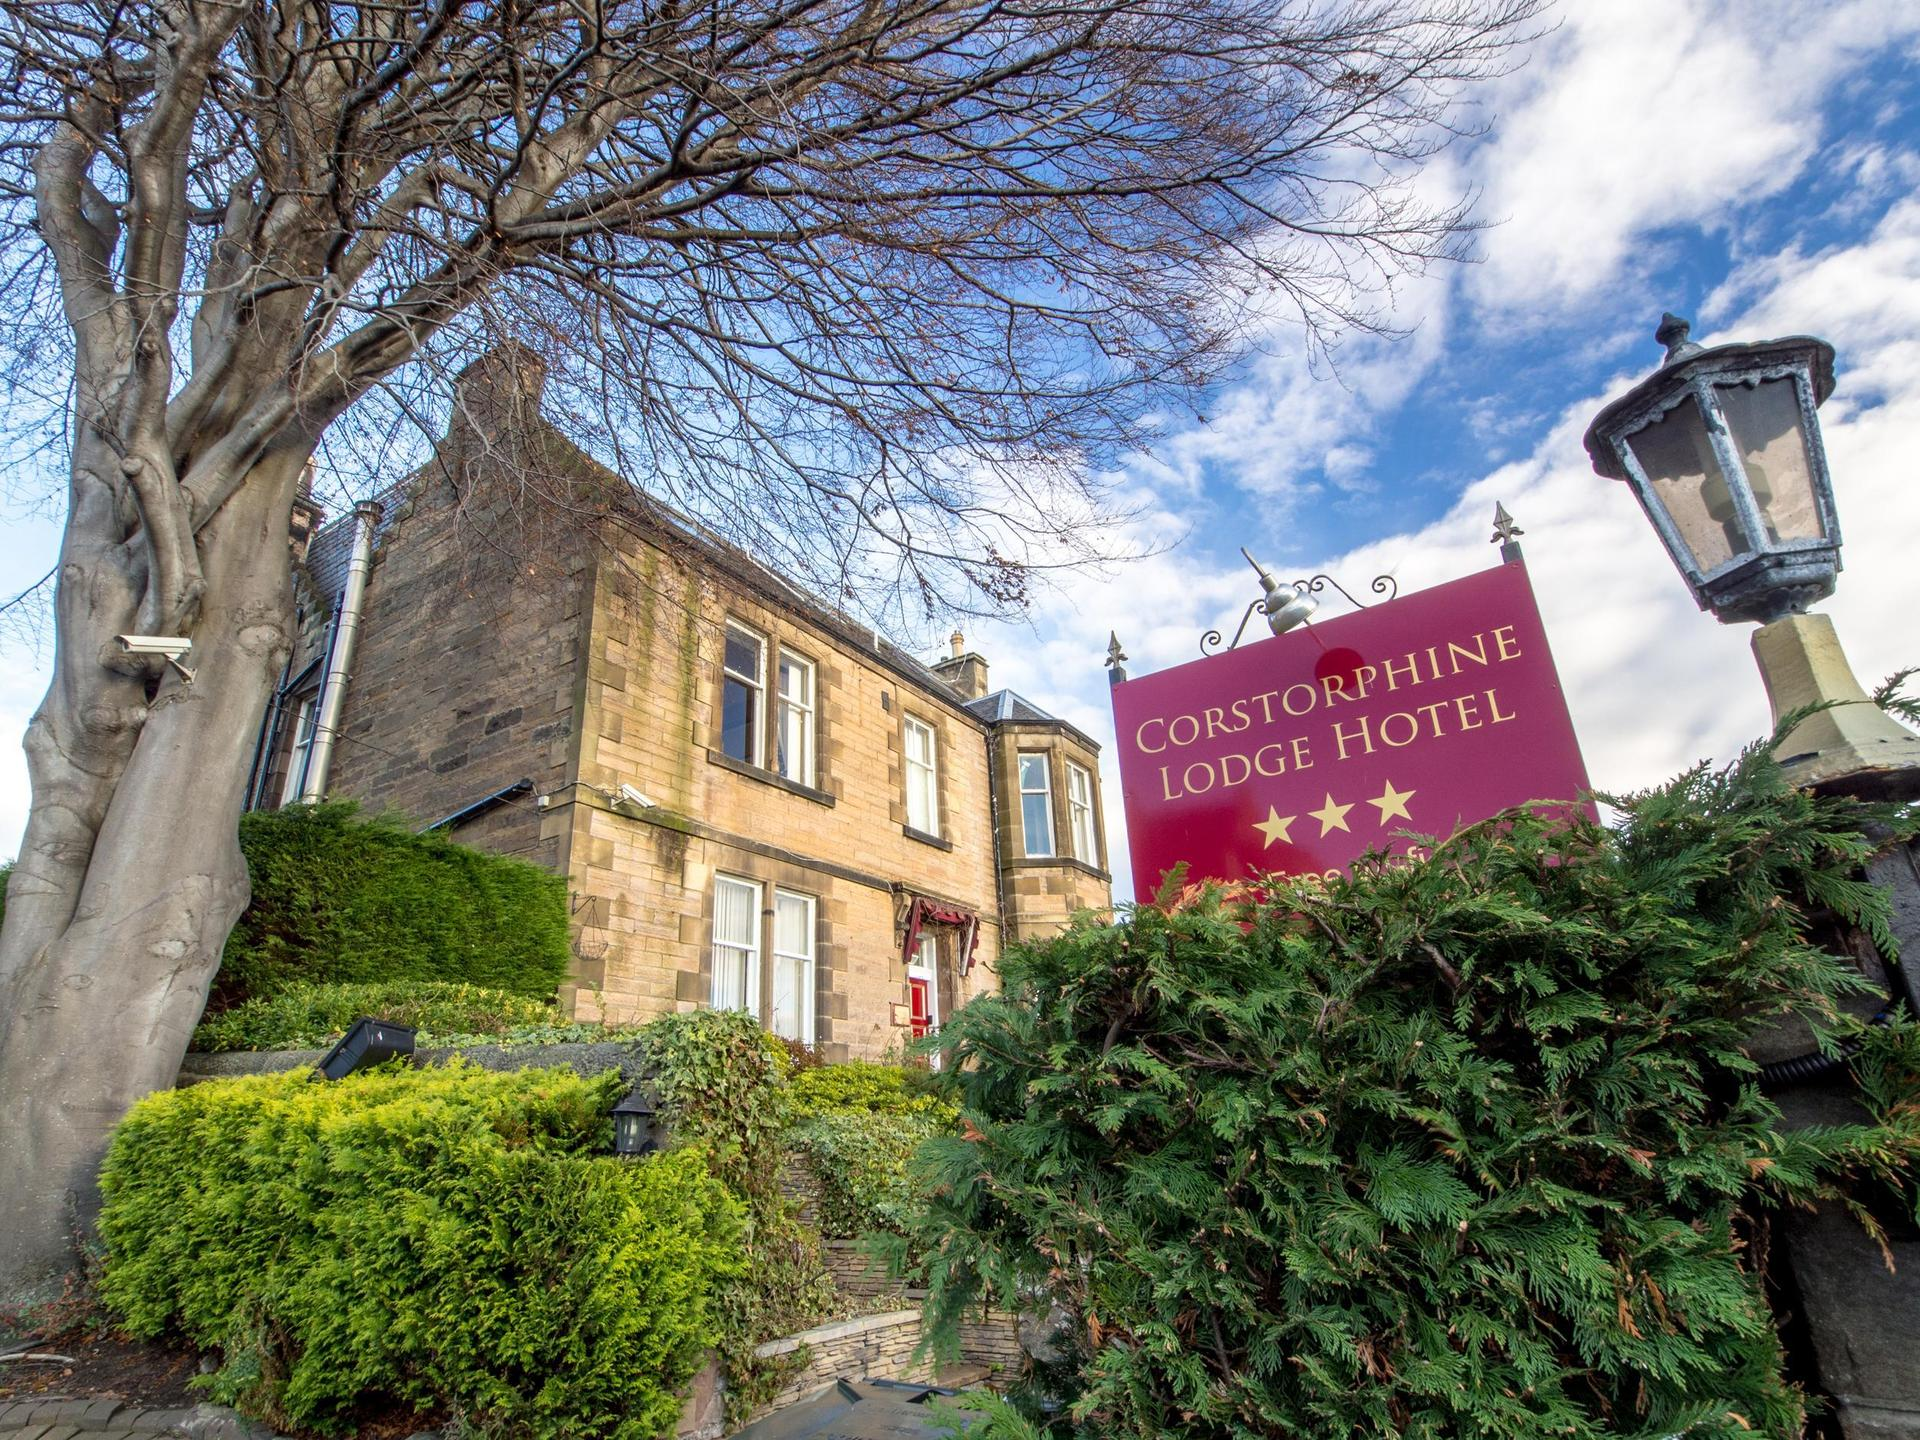 Corstorphine Lodge Hotel in Scotland